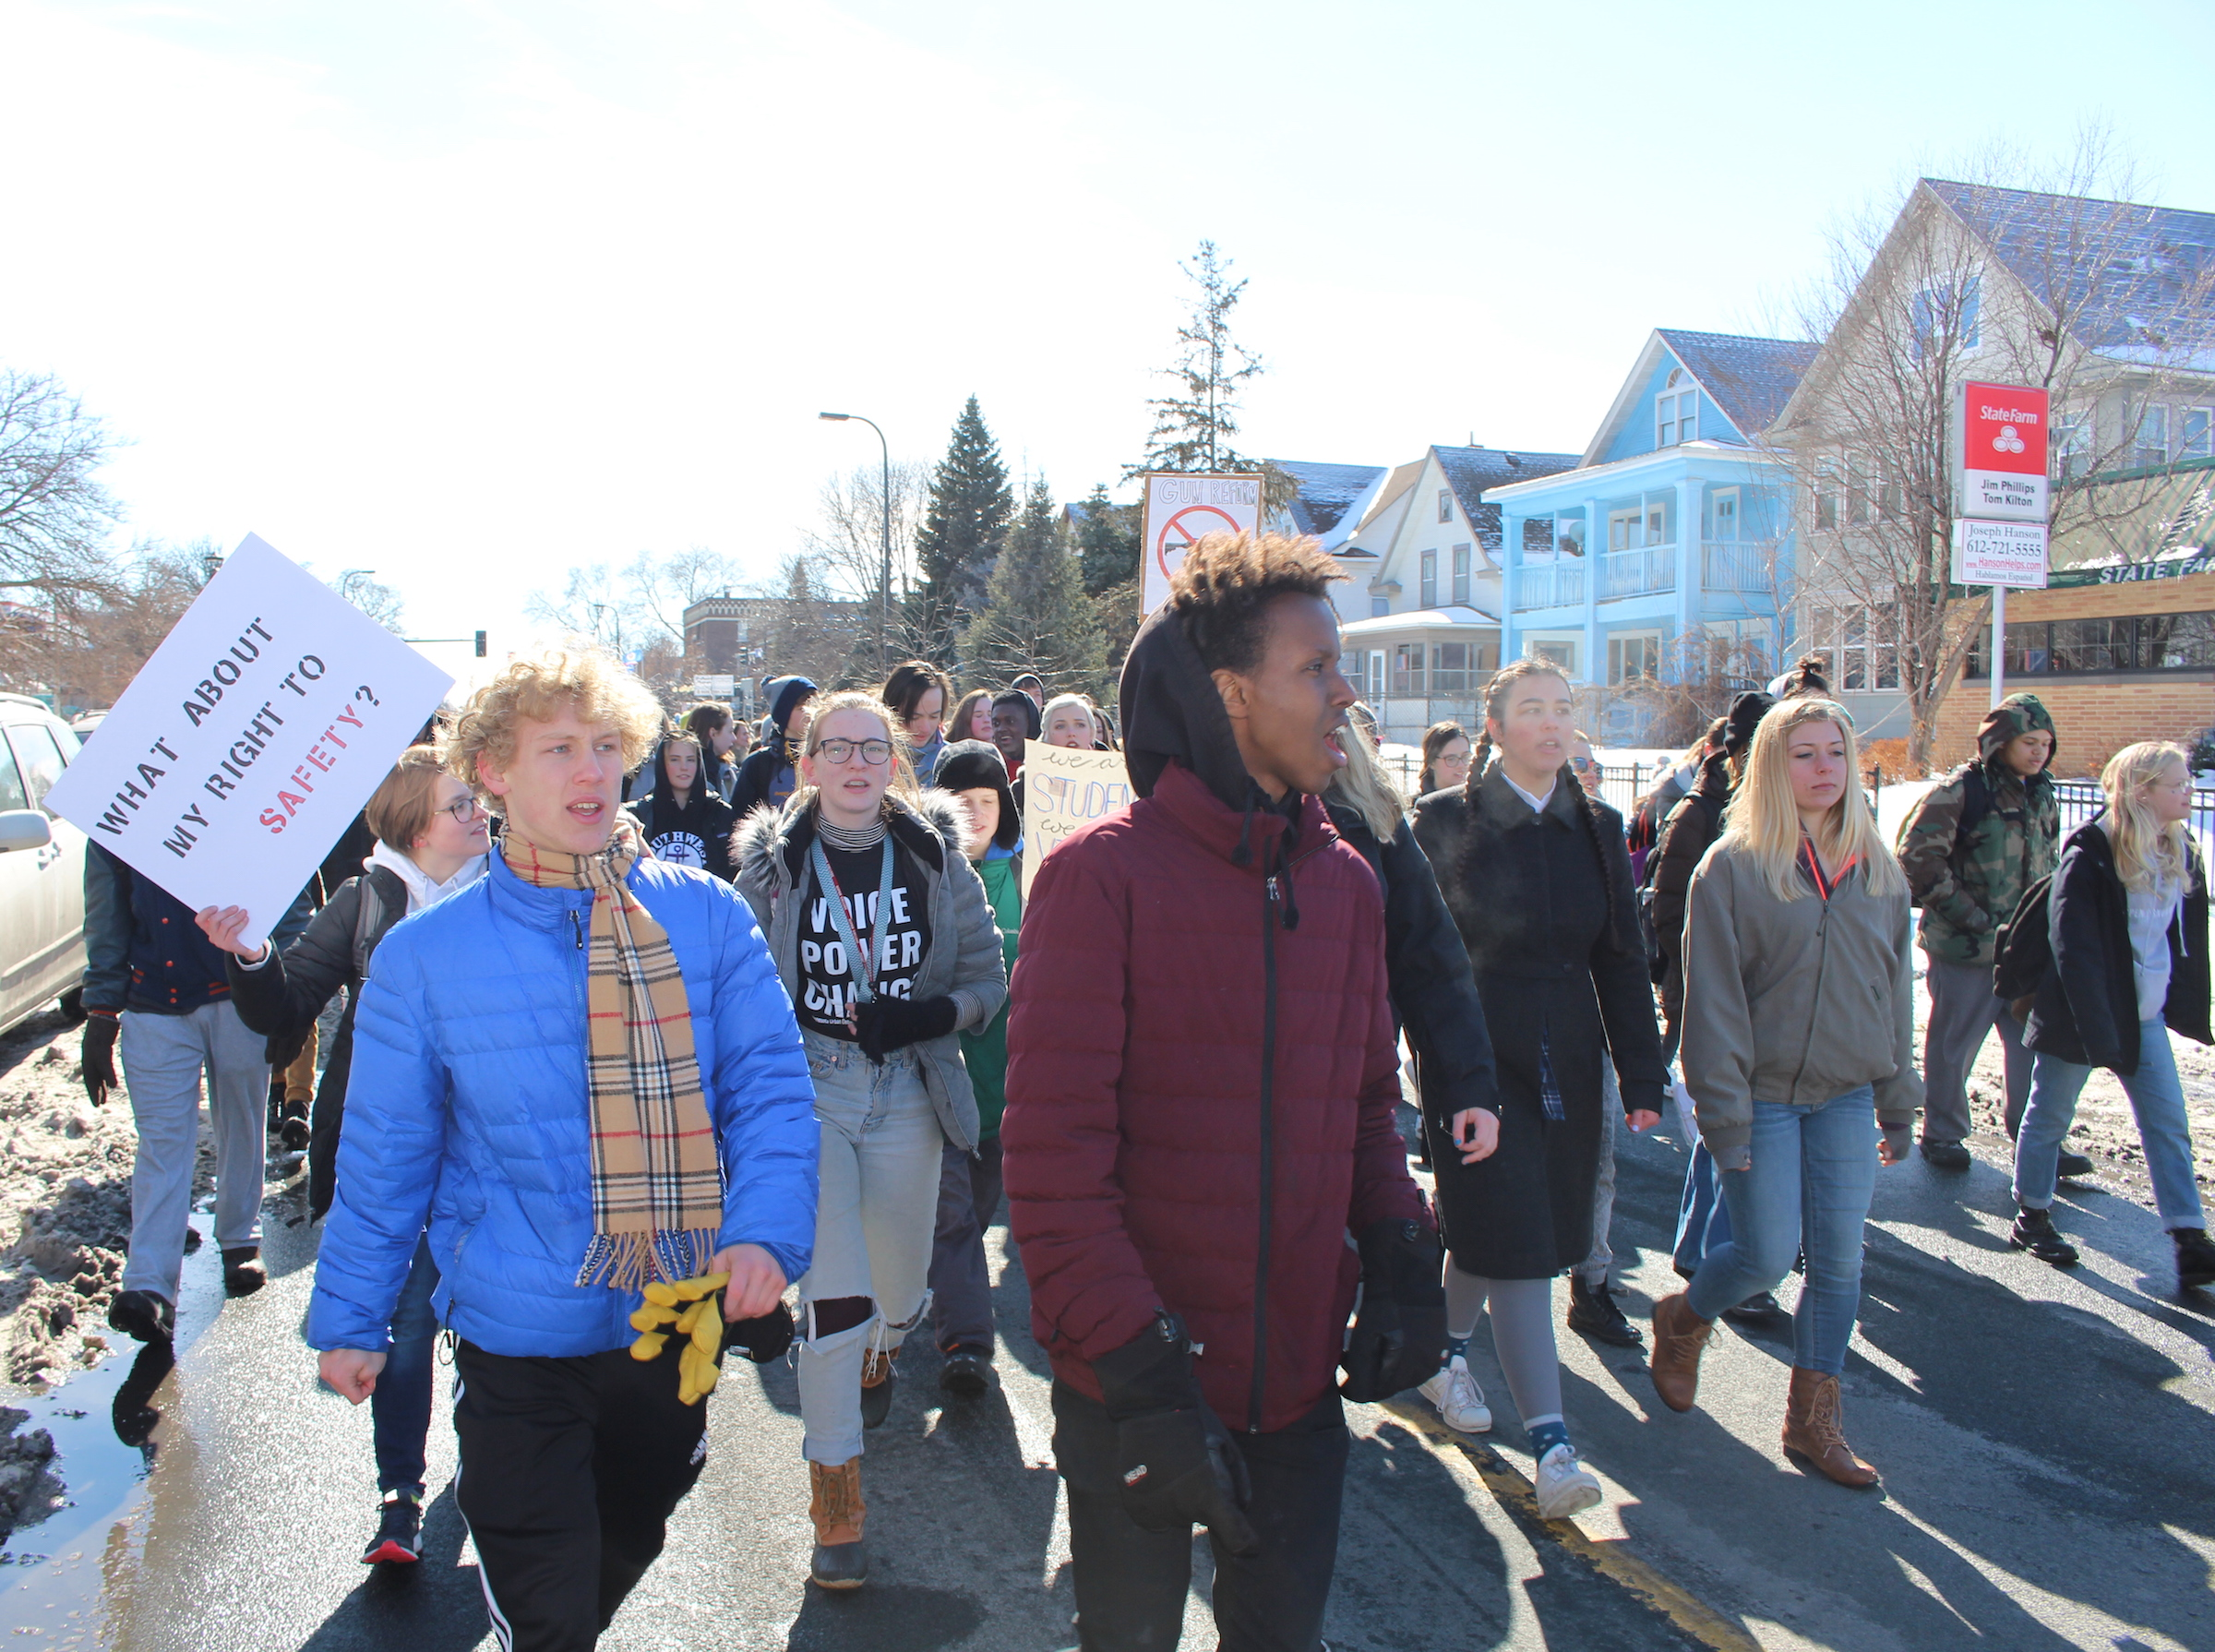 Dozens of Minneapolis students walked out of school on Wednesday to protest gun violence, after the recent mass shooting at a Florida high school.